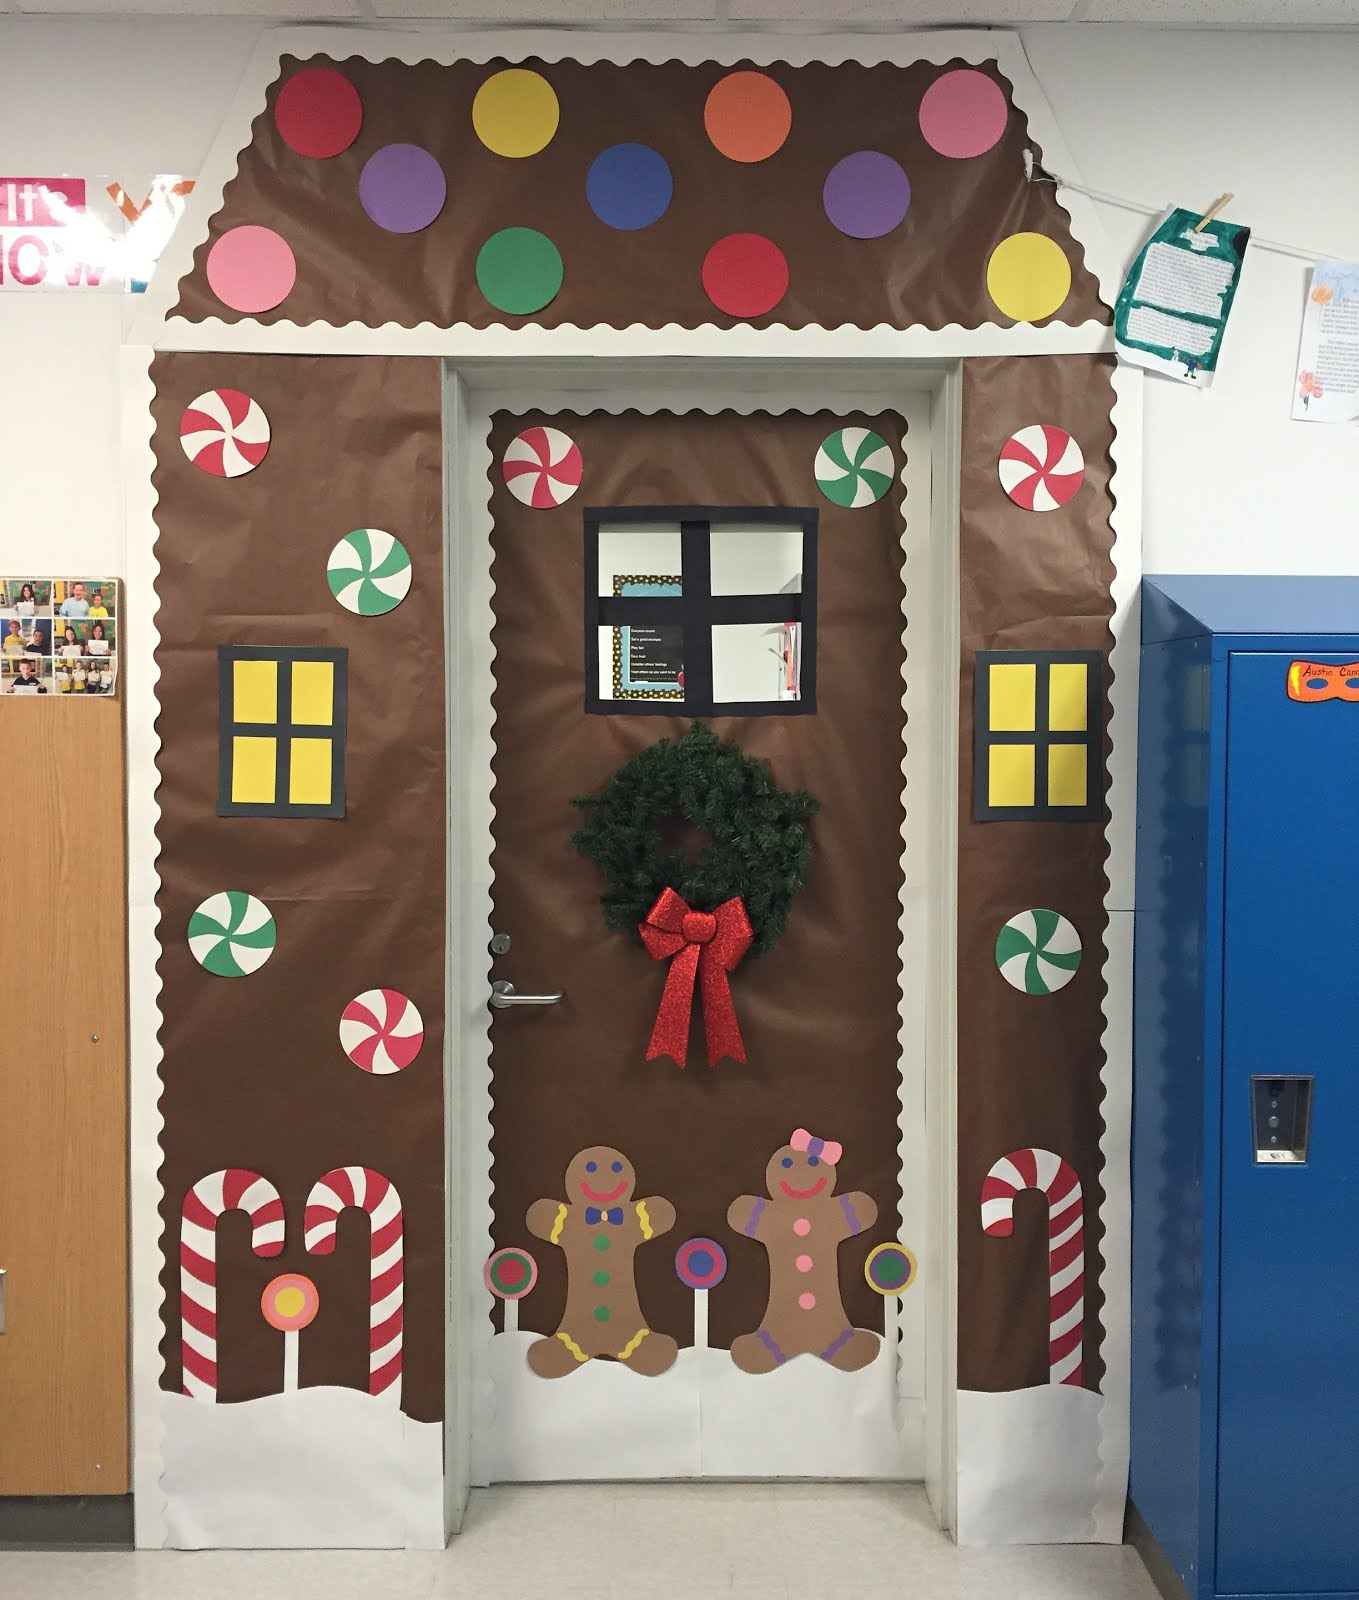 Before And After Merging Two Rooms Has Created A Super: Creative Elementary School Counselor: Winter Door Decorations